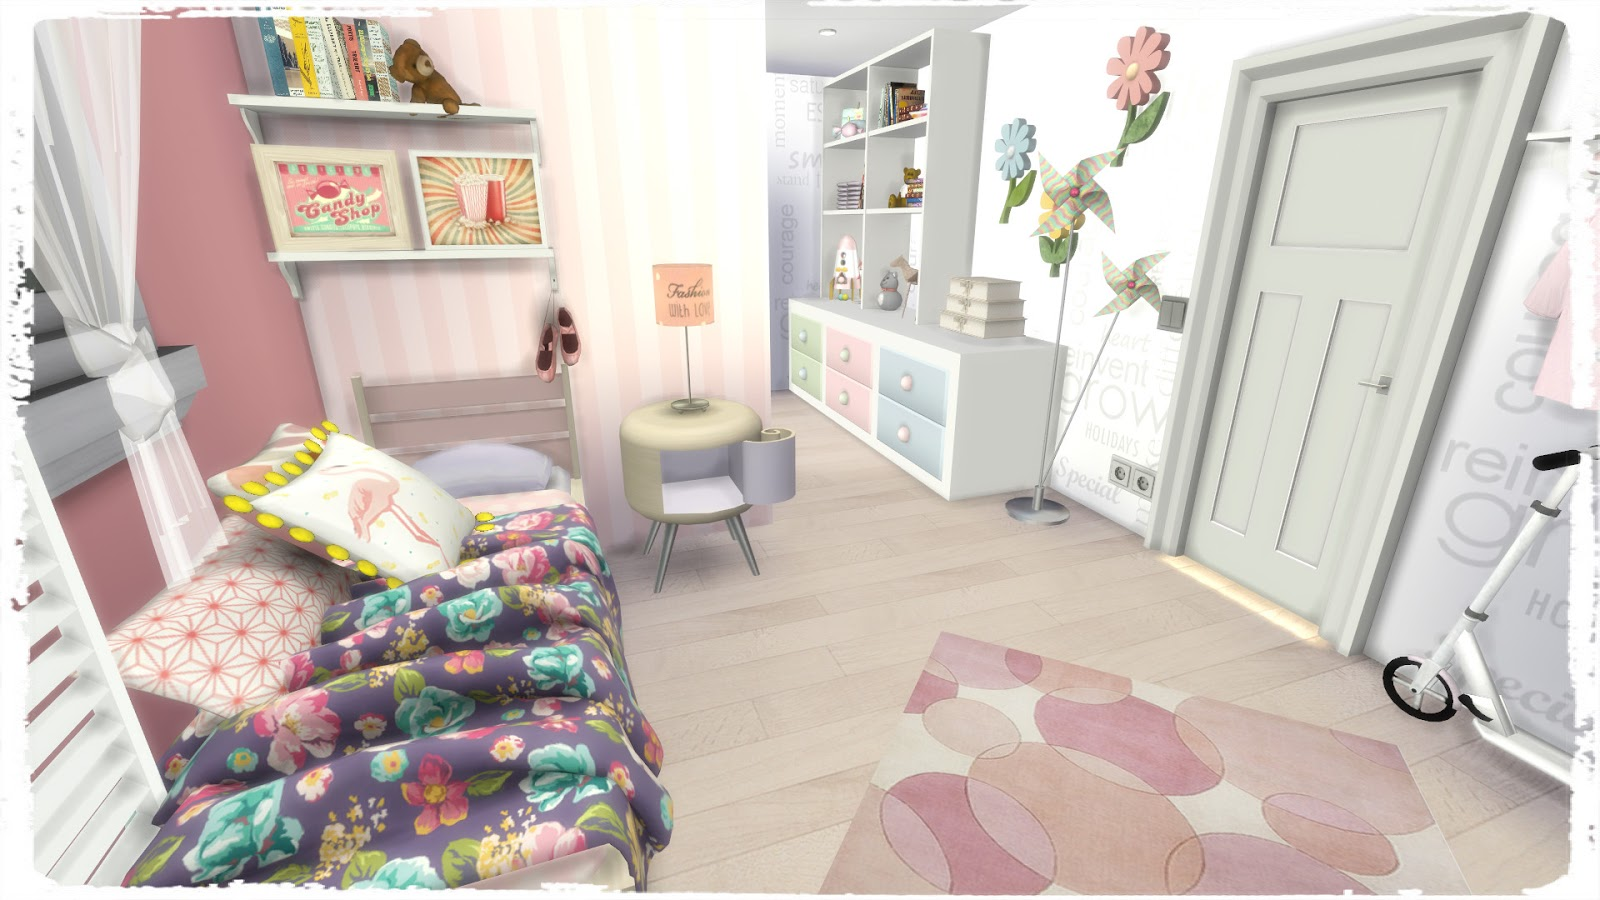 Sims 4 girls bedroom room mods for download dinha for Rooms 4 kids